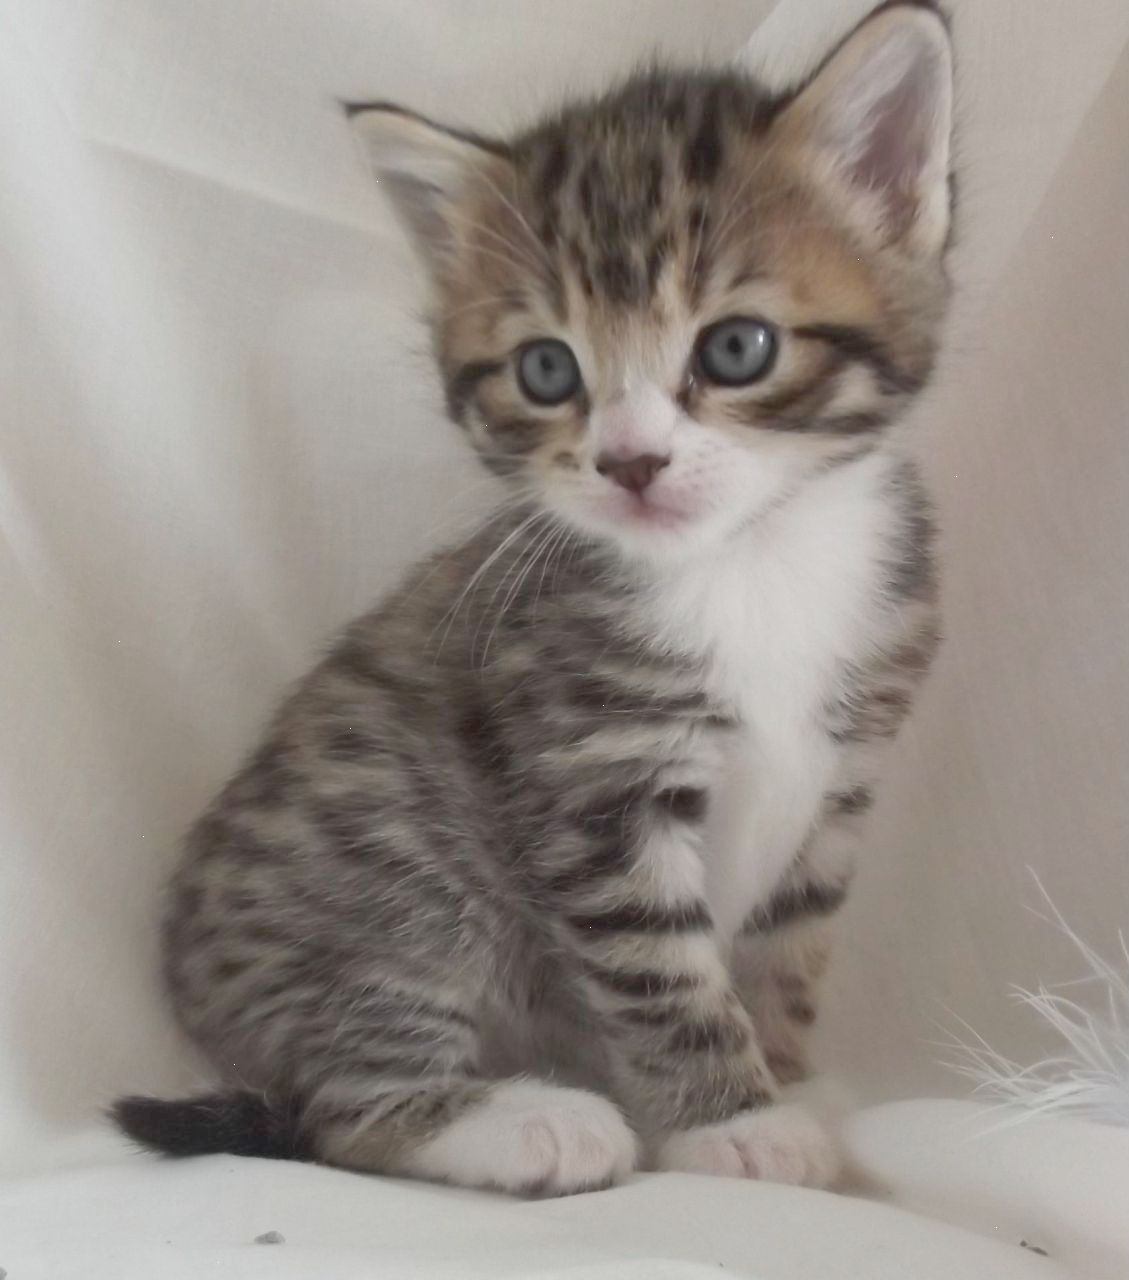 Gray Brown And White Kittens With Blue Eyes Google Search Grey Tabby Kittens Tabby Kittens For Sale Grey Kitten